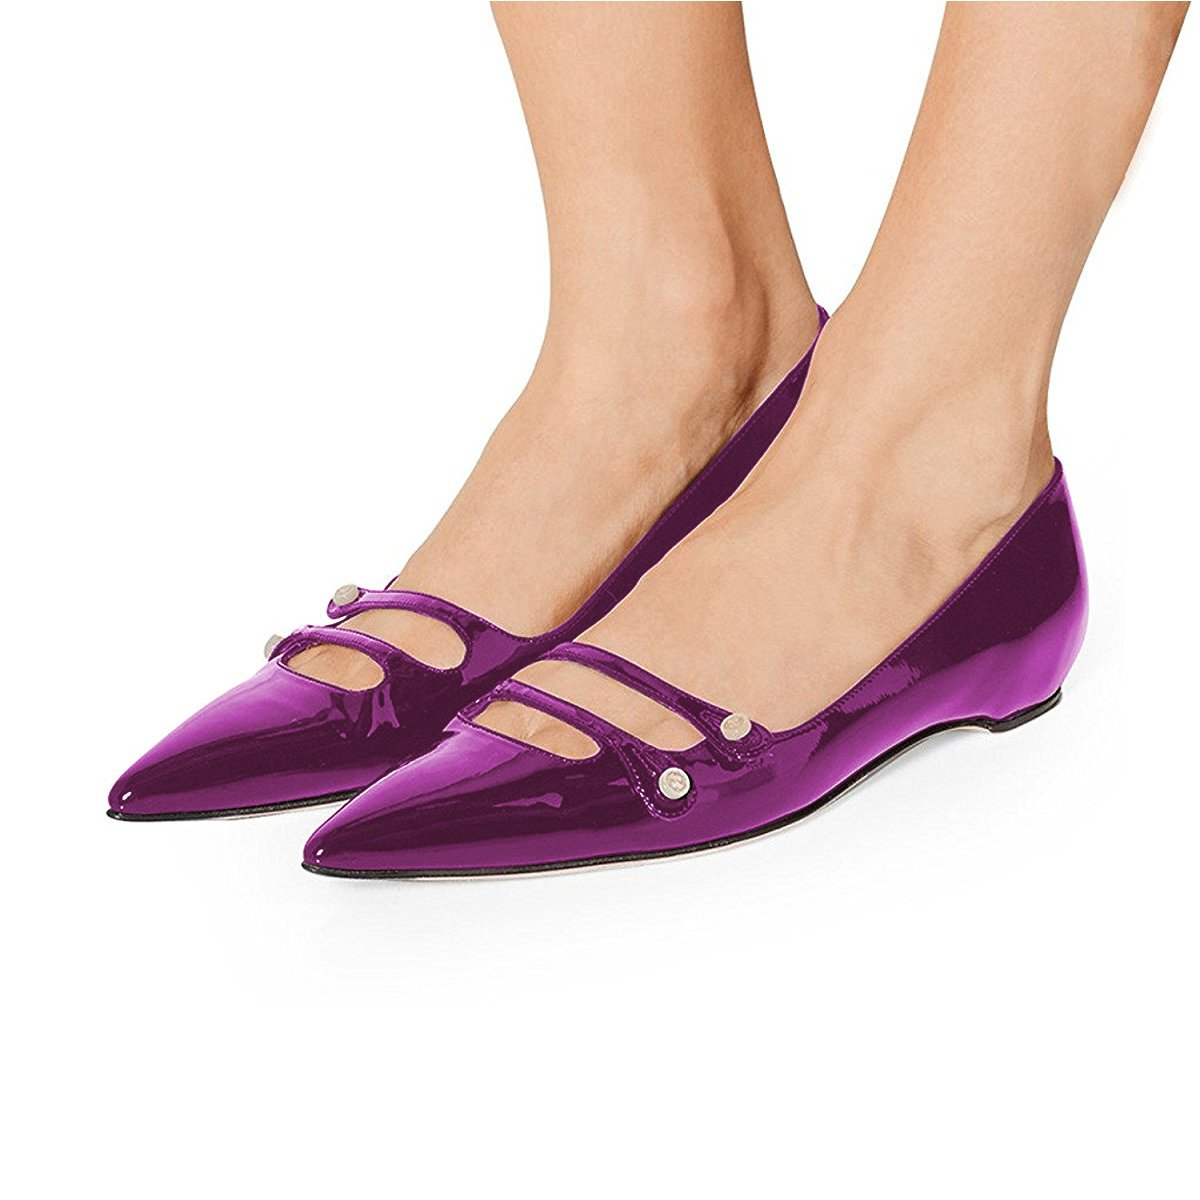 YDN Women Pointed Toe Slip on Flats Hidden Low Heels Pumps Comfort Shoes with Straps B077G6RF7P 15 M US|Purple